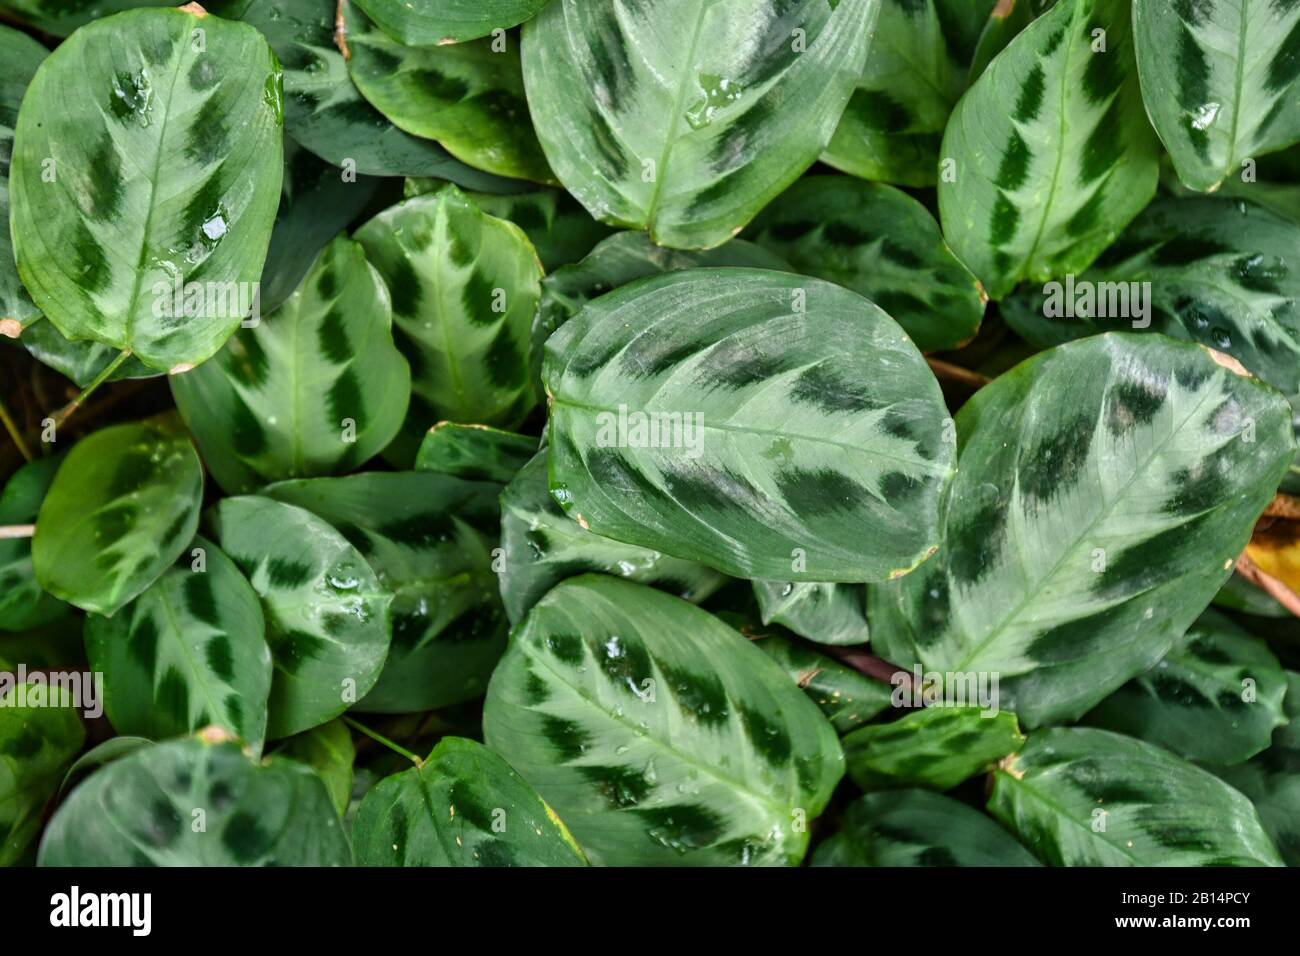 Tropical Maranta Cristata Bicolor House Plants With Leaves With Unique Dark And Light Stripe And Dot Pattern Covering Ground Stock Photo Alamy